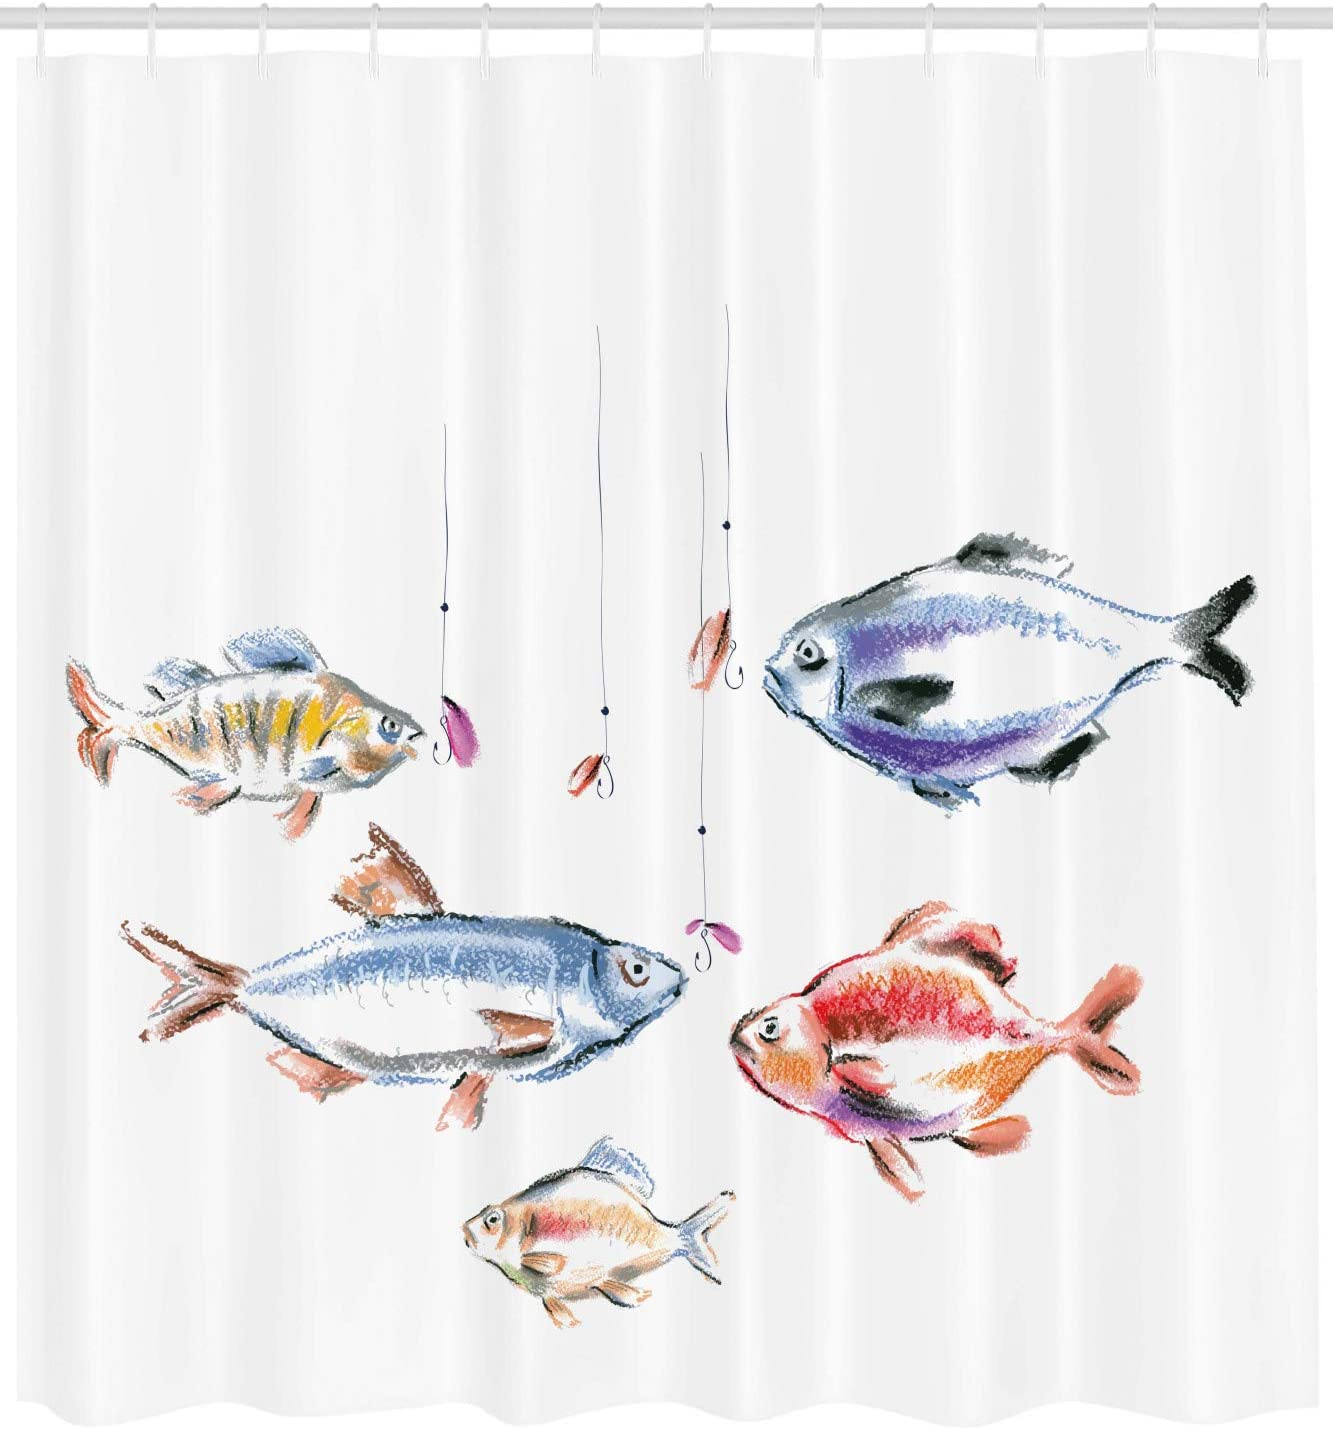 Amazon Com Lunarable Fishing Shower Curtain Retro Fishing Love Theme With Goldfish Herring Bream Bass Salmon Image Cloth Fabric Bathroom Decor Set With Hooks 105 Extra Wide Multicolor Home Kitchen